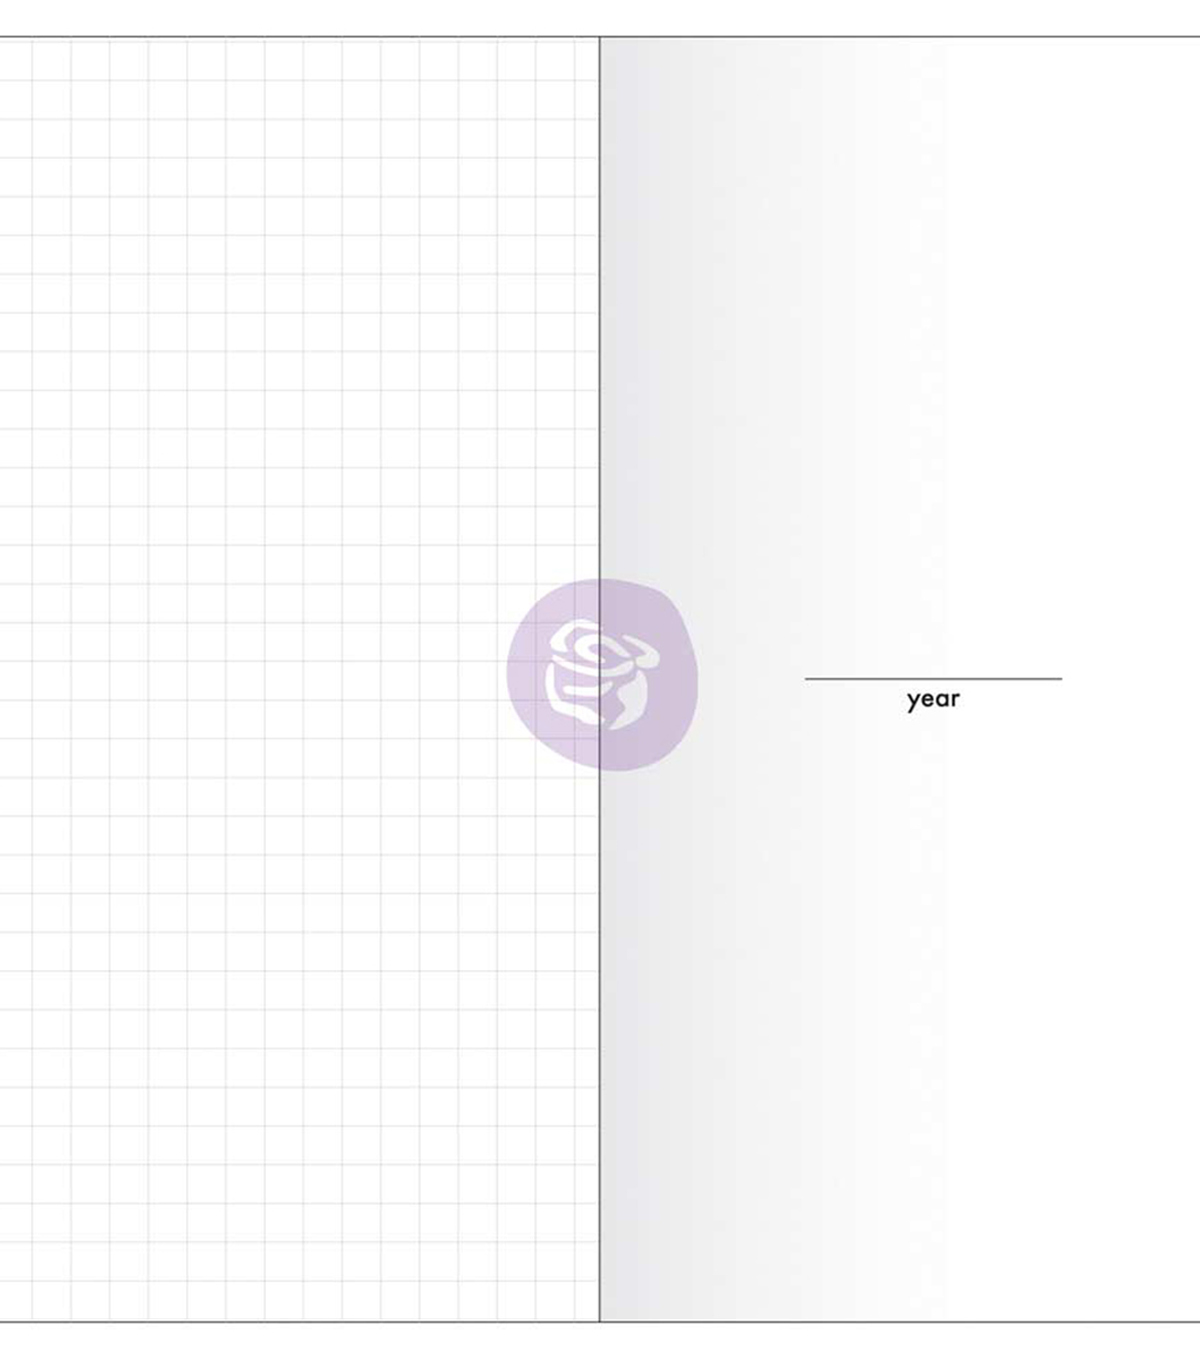 Prima Traveler\u0027s Journal Notebook Refill 32 Sheets-Daily w/White Paper